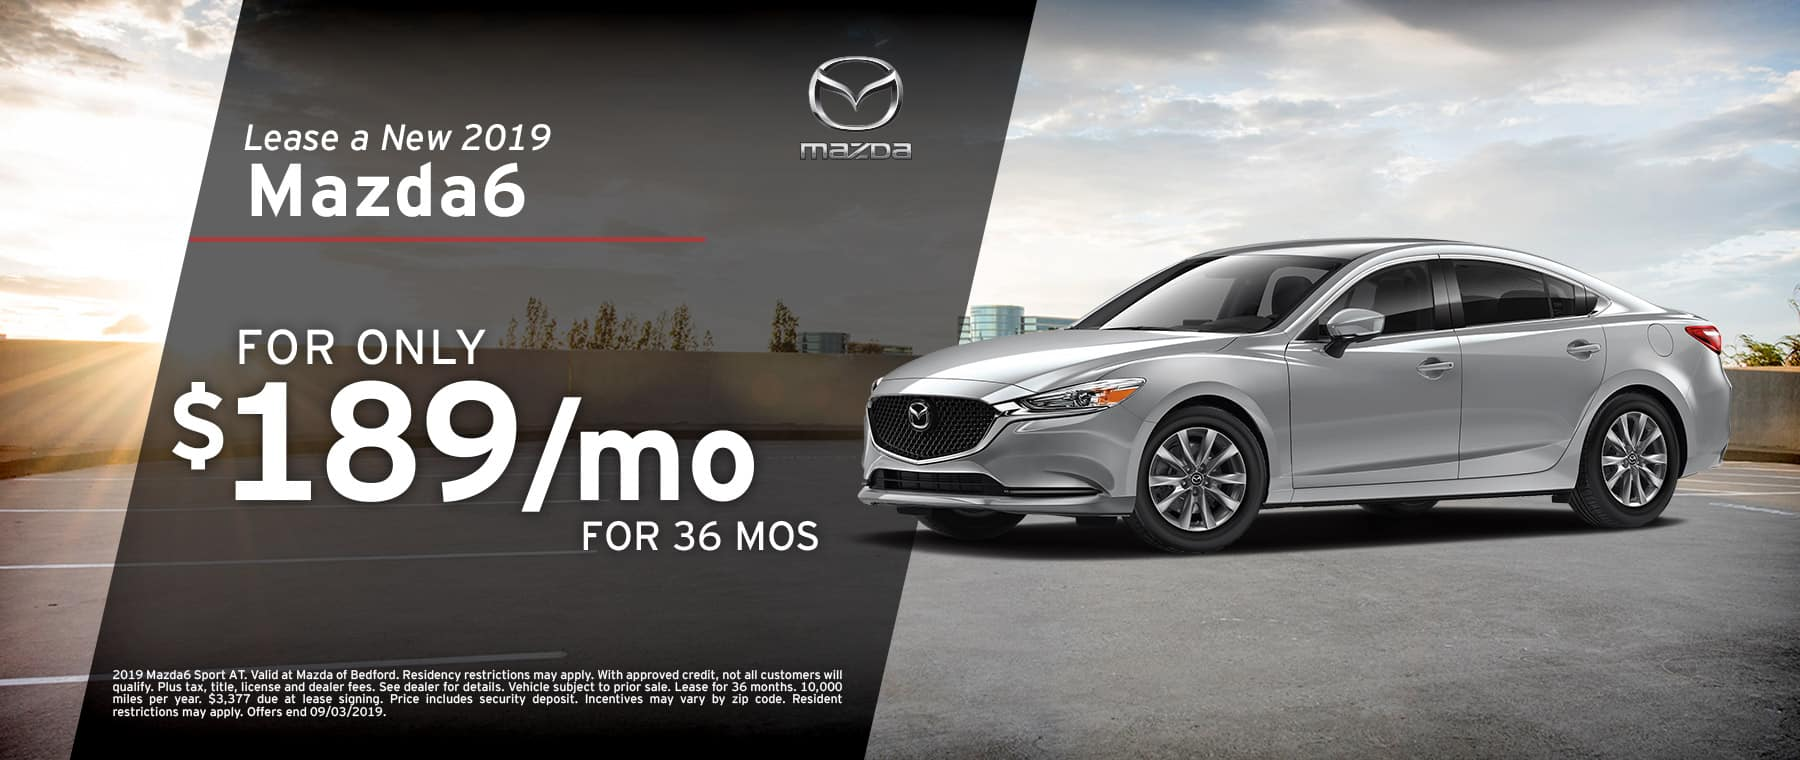 2019 Mazda6 at Mazda of Bedford